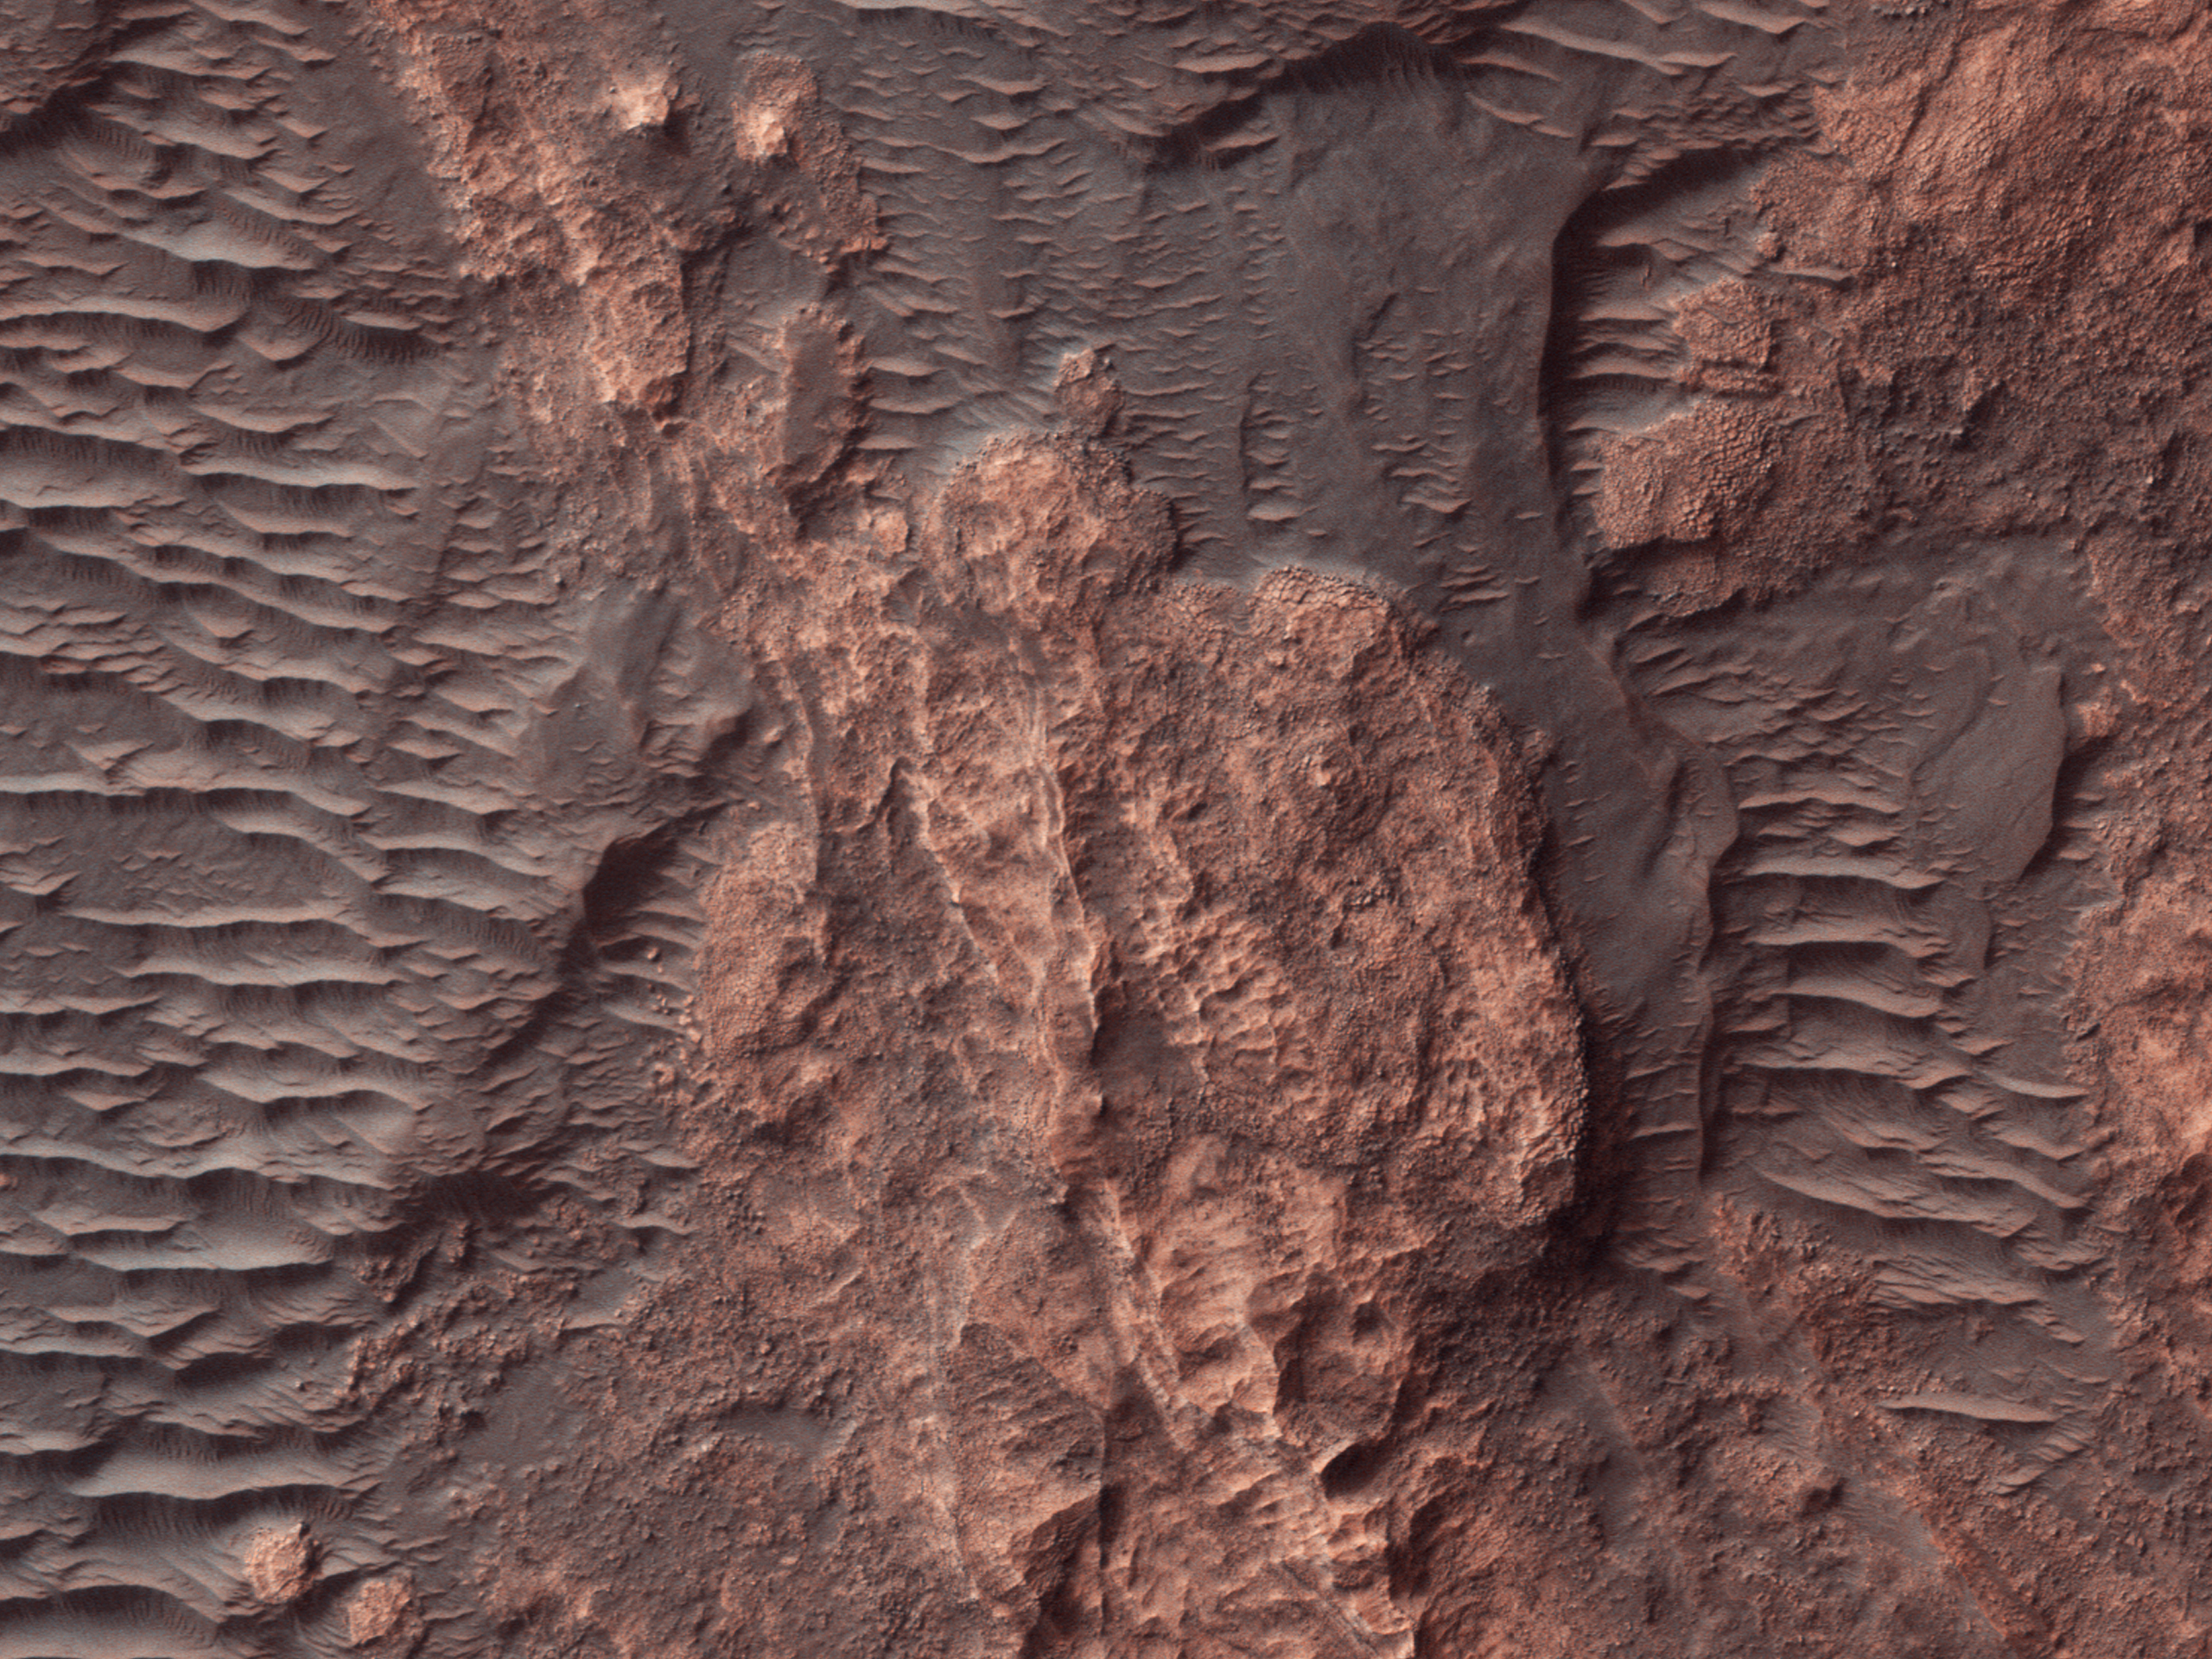 Rock Outcrops in a Southern Mid-Latitude Crater